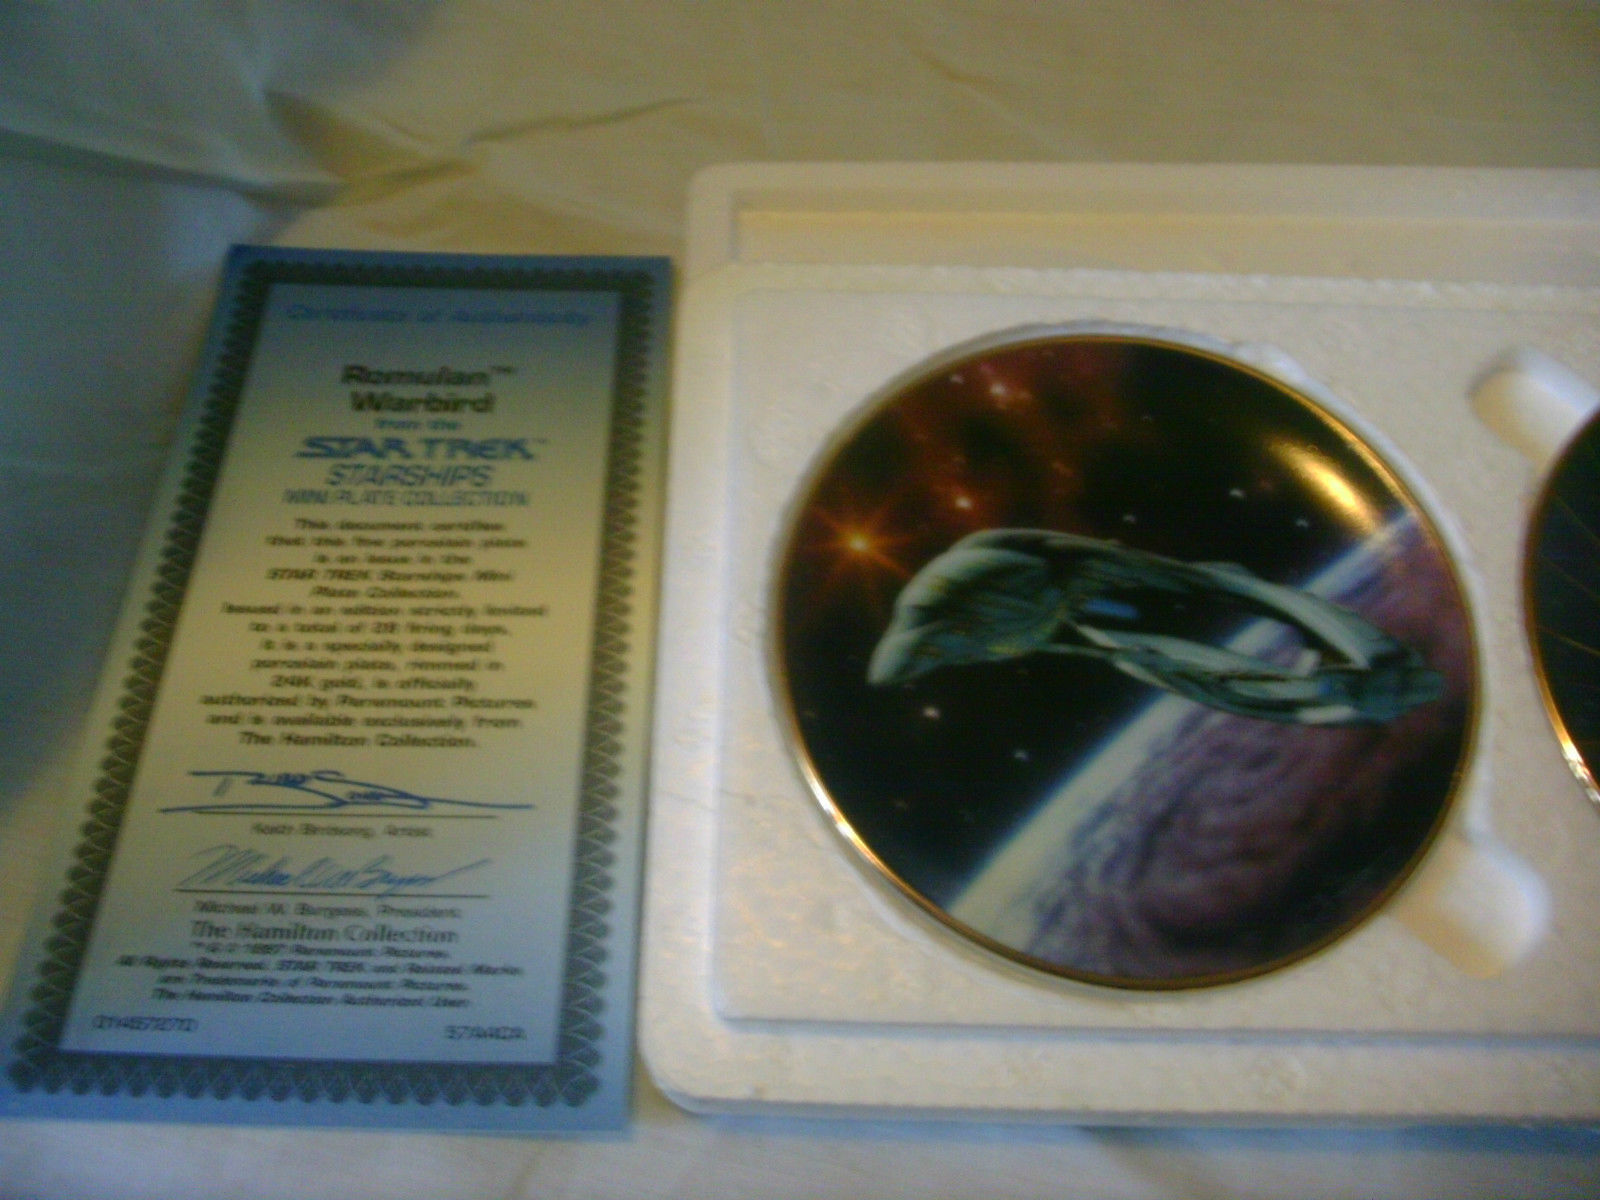 Star Trek Starships Mini Plates Set of 2 The Hamilton Collection image 3